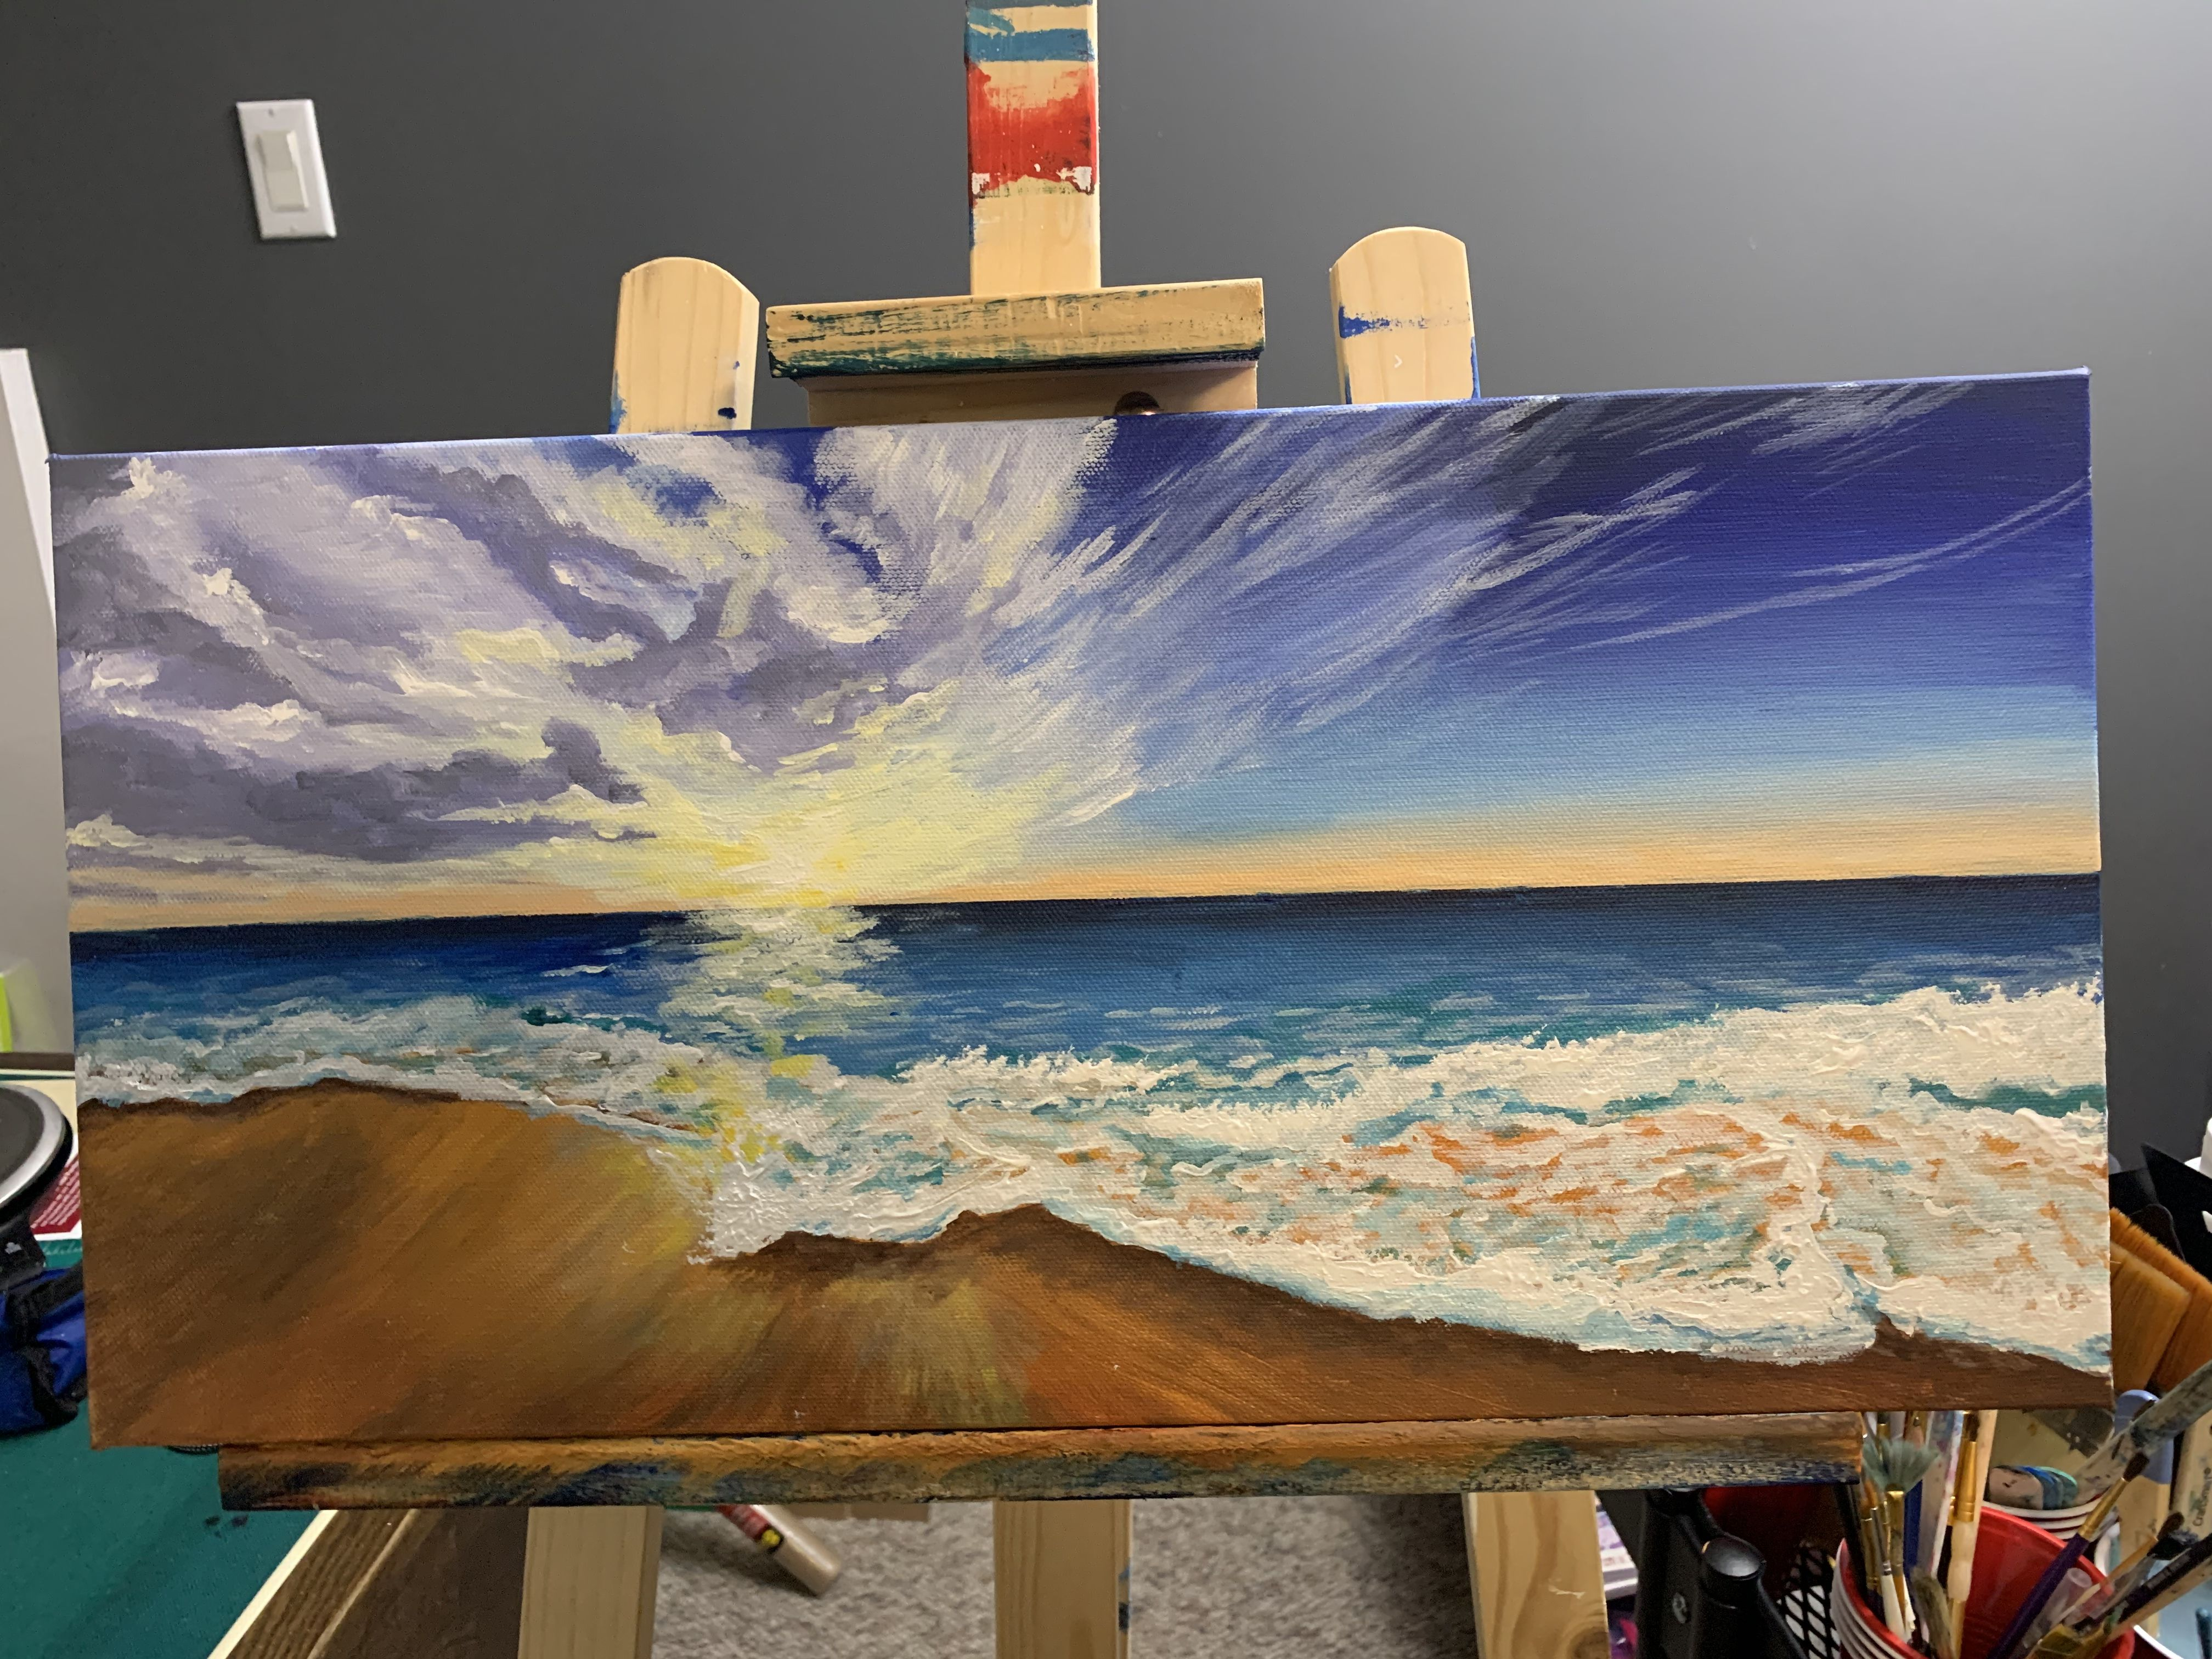 Something Ive been working on last night #acrylicpainting #landscapepainting   #seascapepainting. #seaview #canvasart #wallart. #wavespainting. #beachpainting